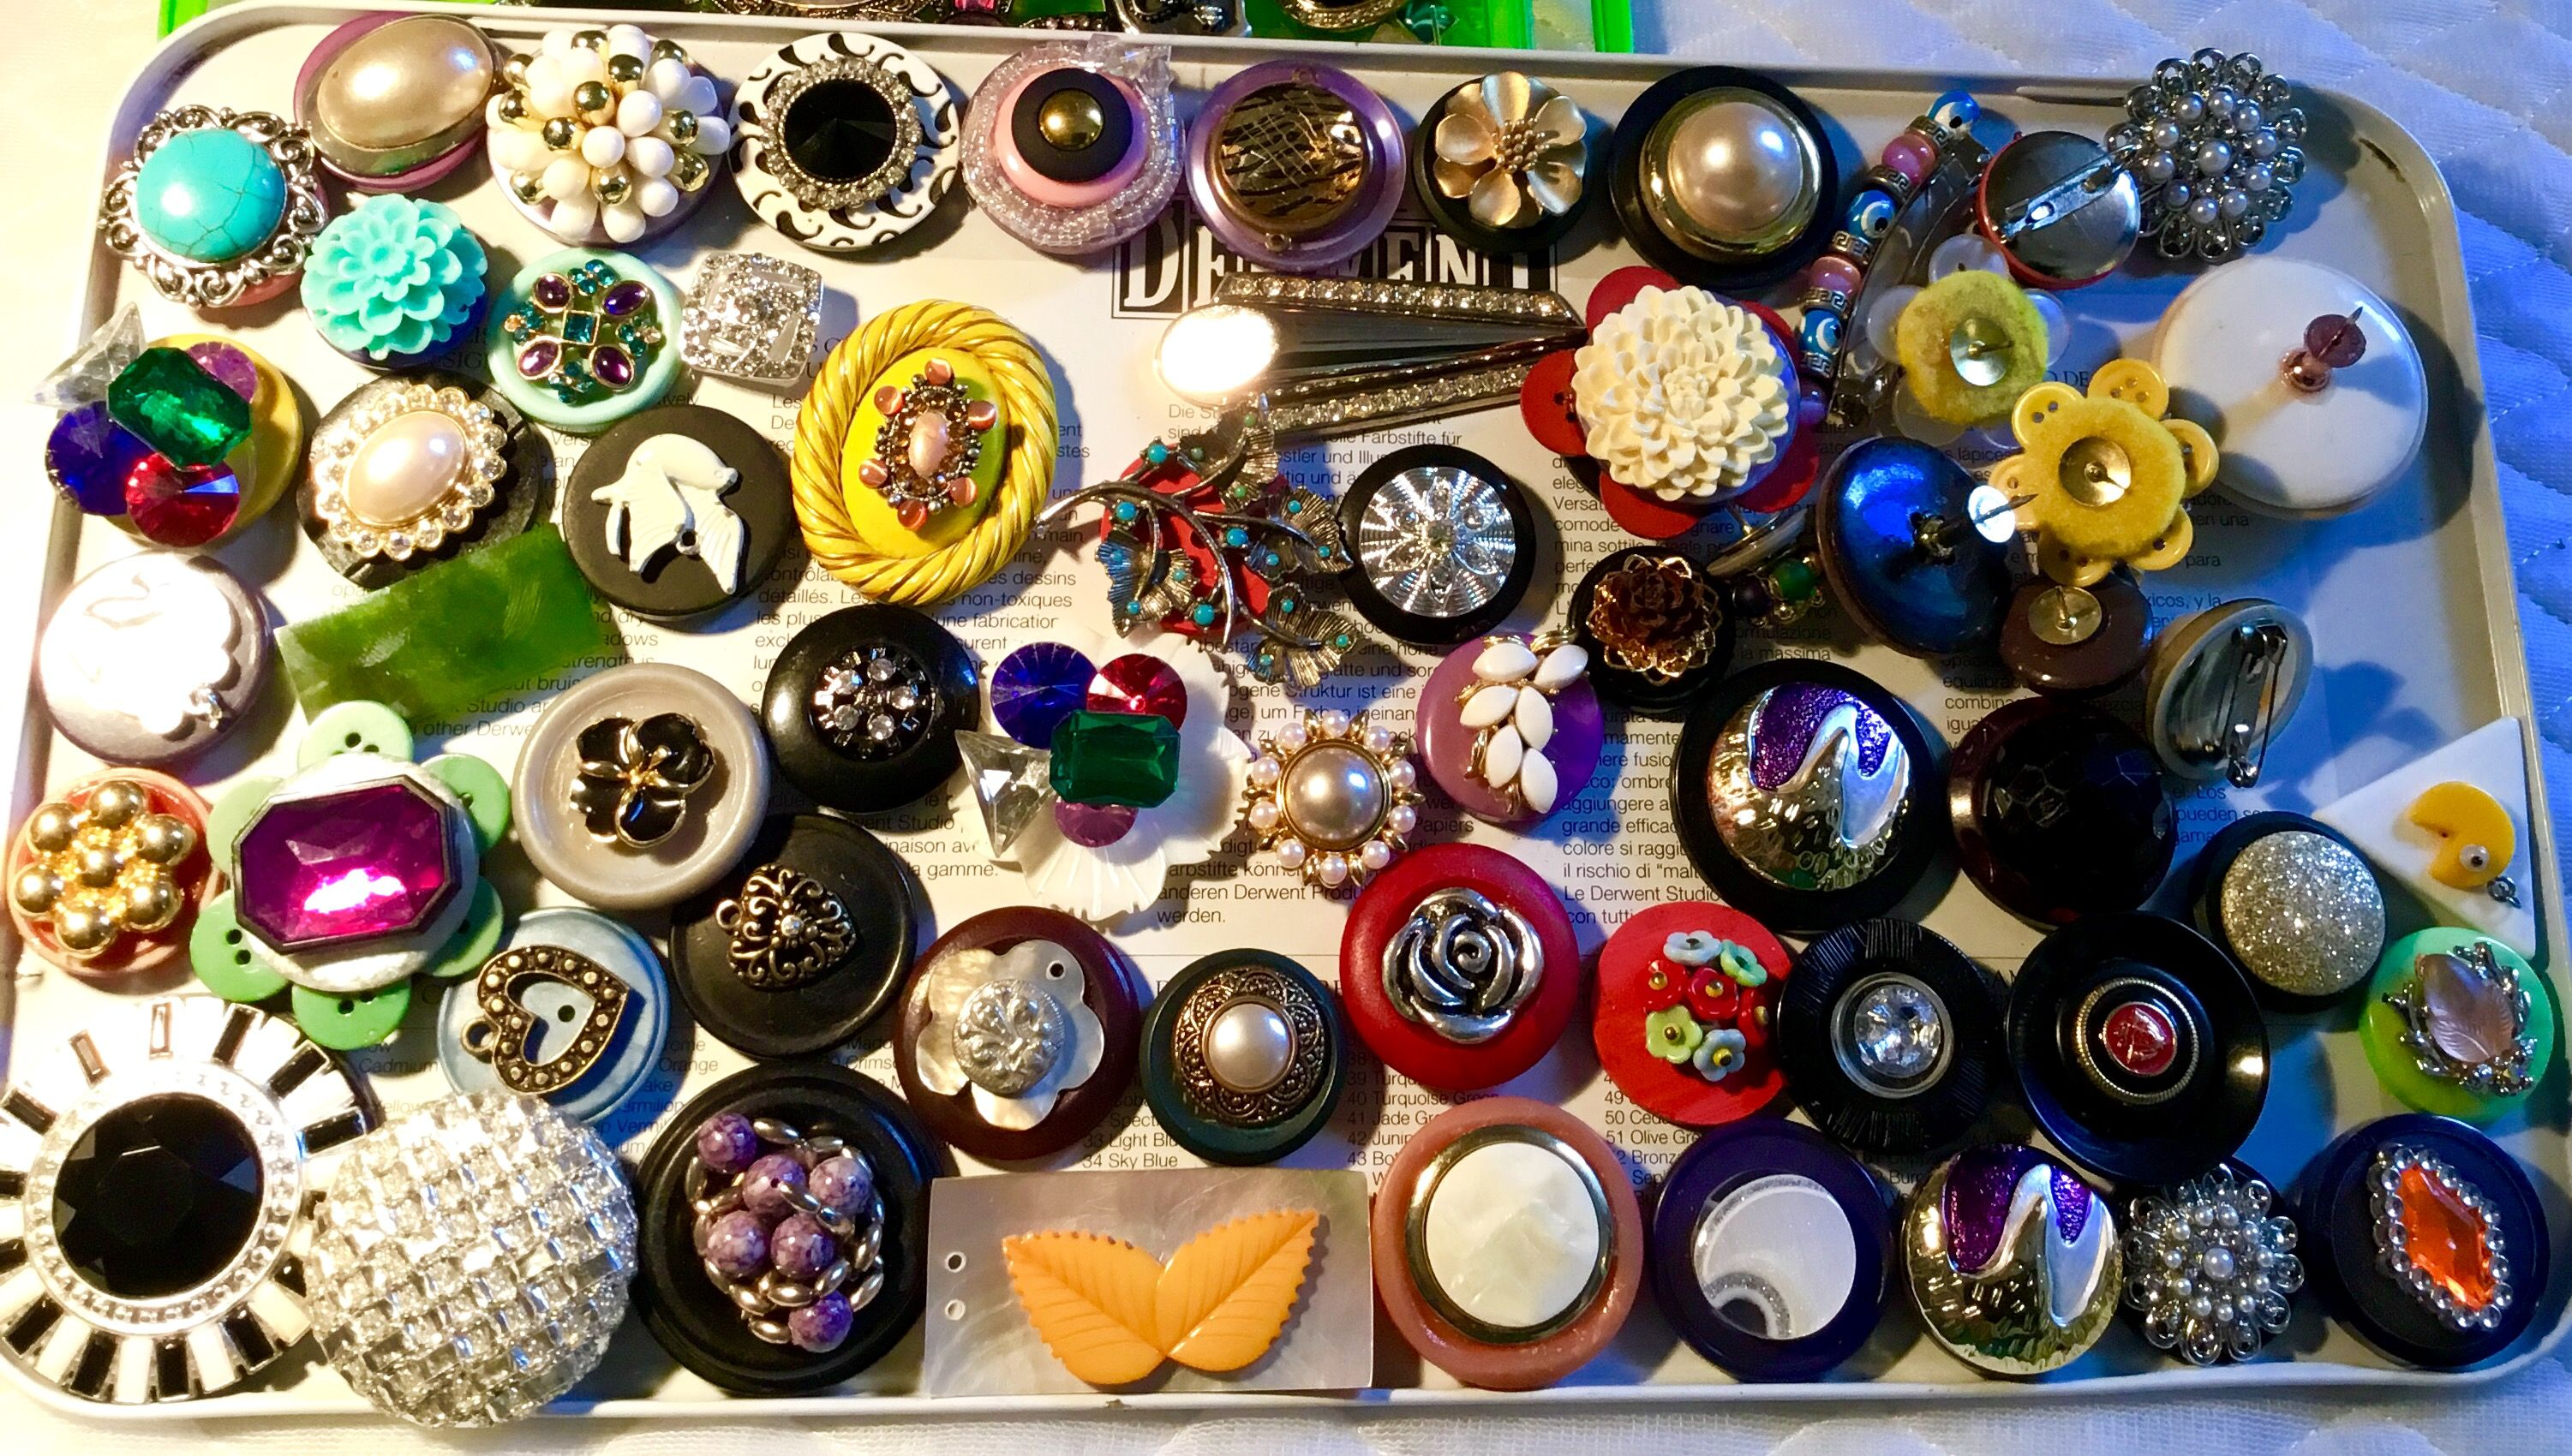 Mixed media old, vintage and a few new pieces, magnets, hair clips , pushpins, and brooches